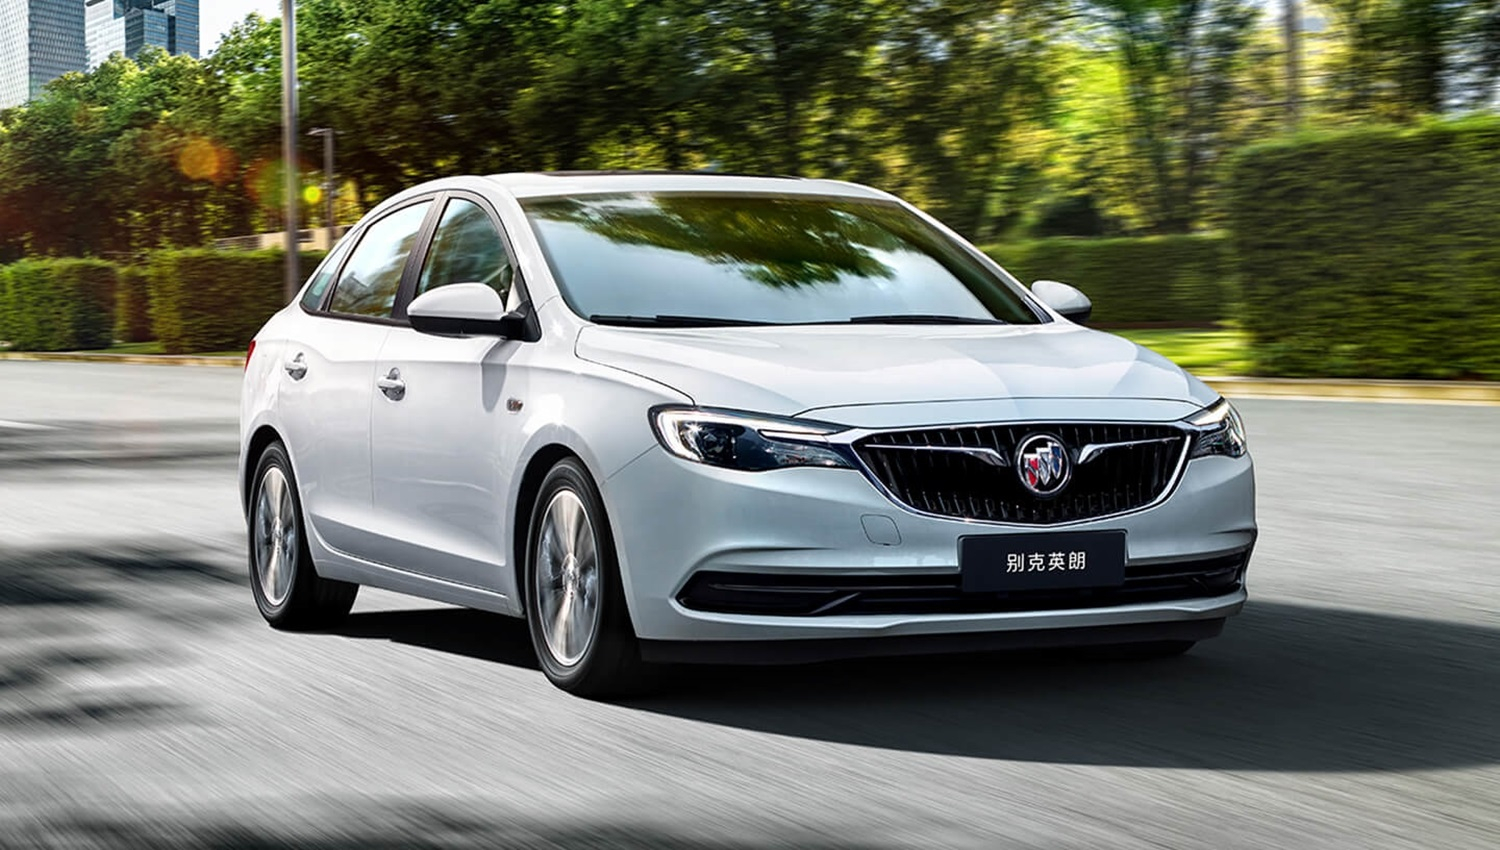 New 2021 Buick Excelle Gt Mild Hybrid Revealed | Gm Authority 2021 Buick Verano Tire Size, Mpg, Gas Mileage